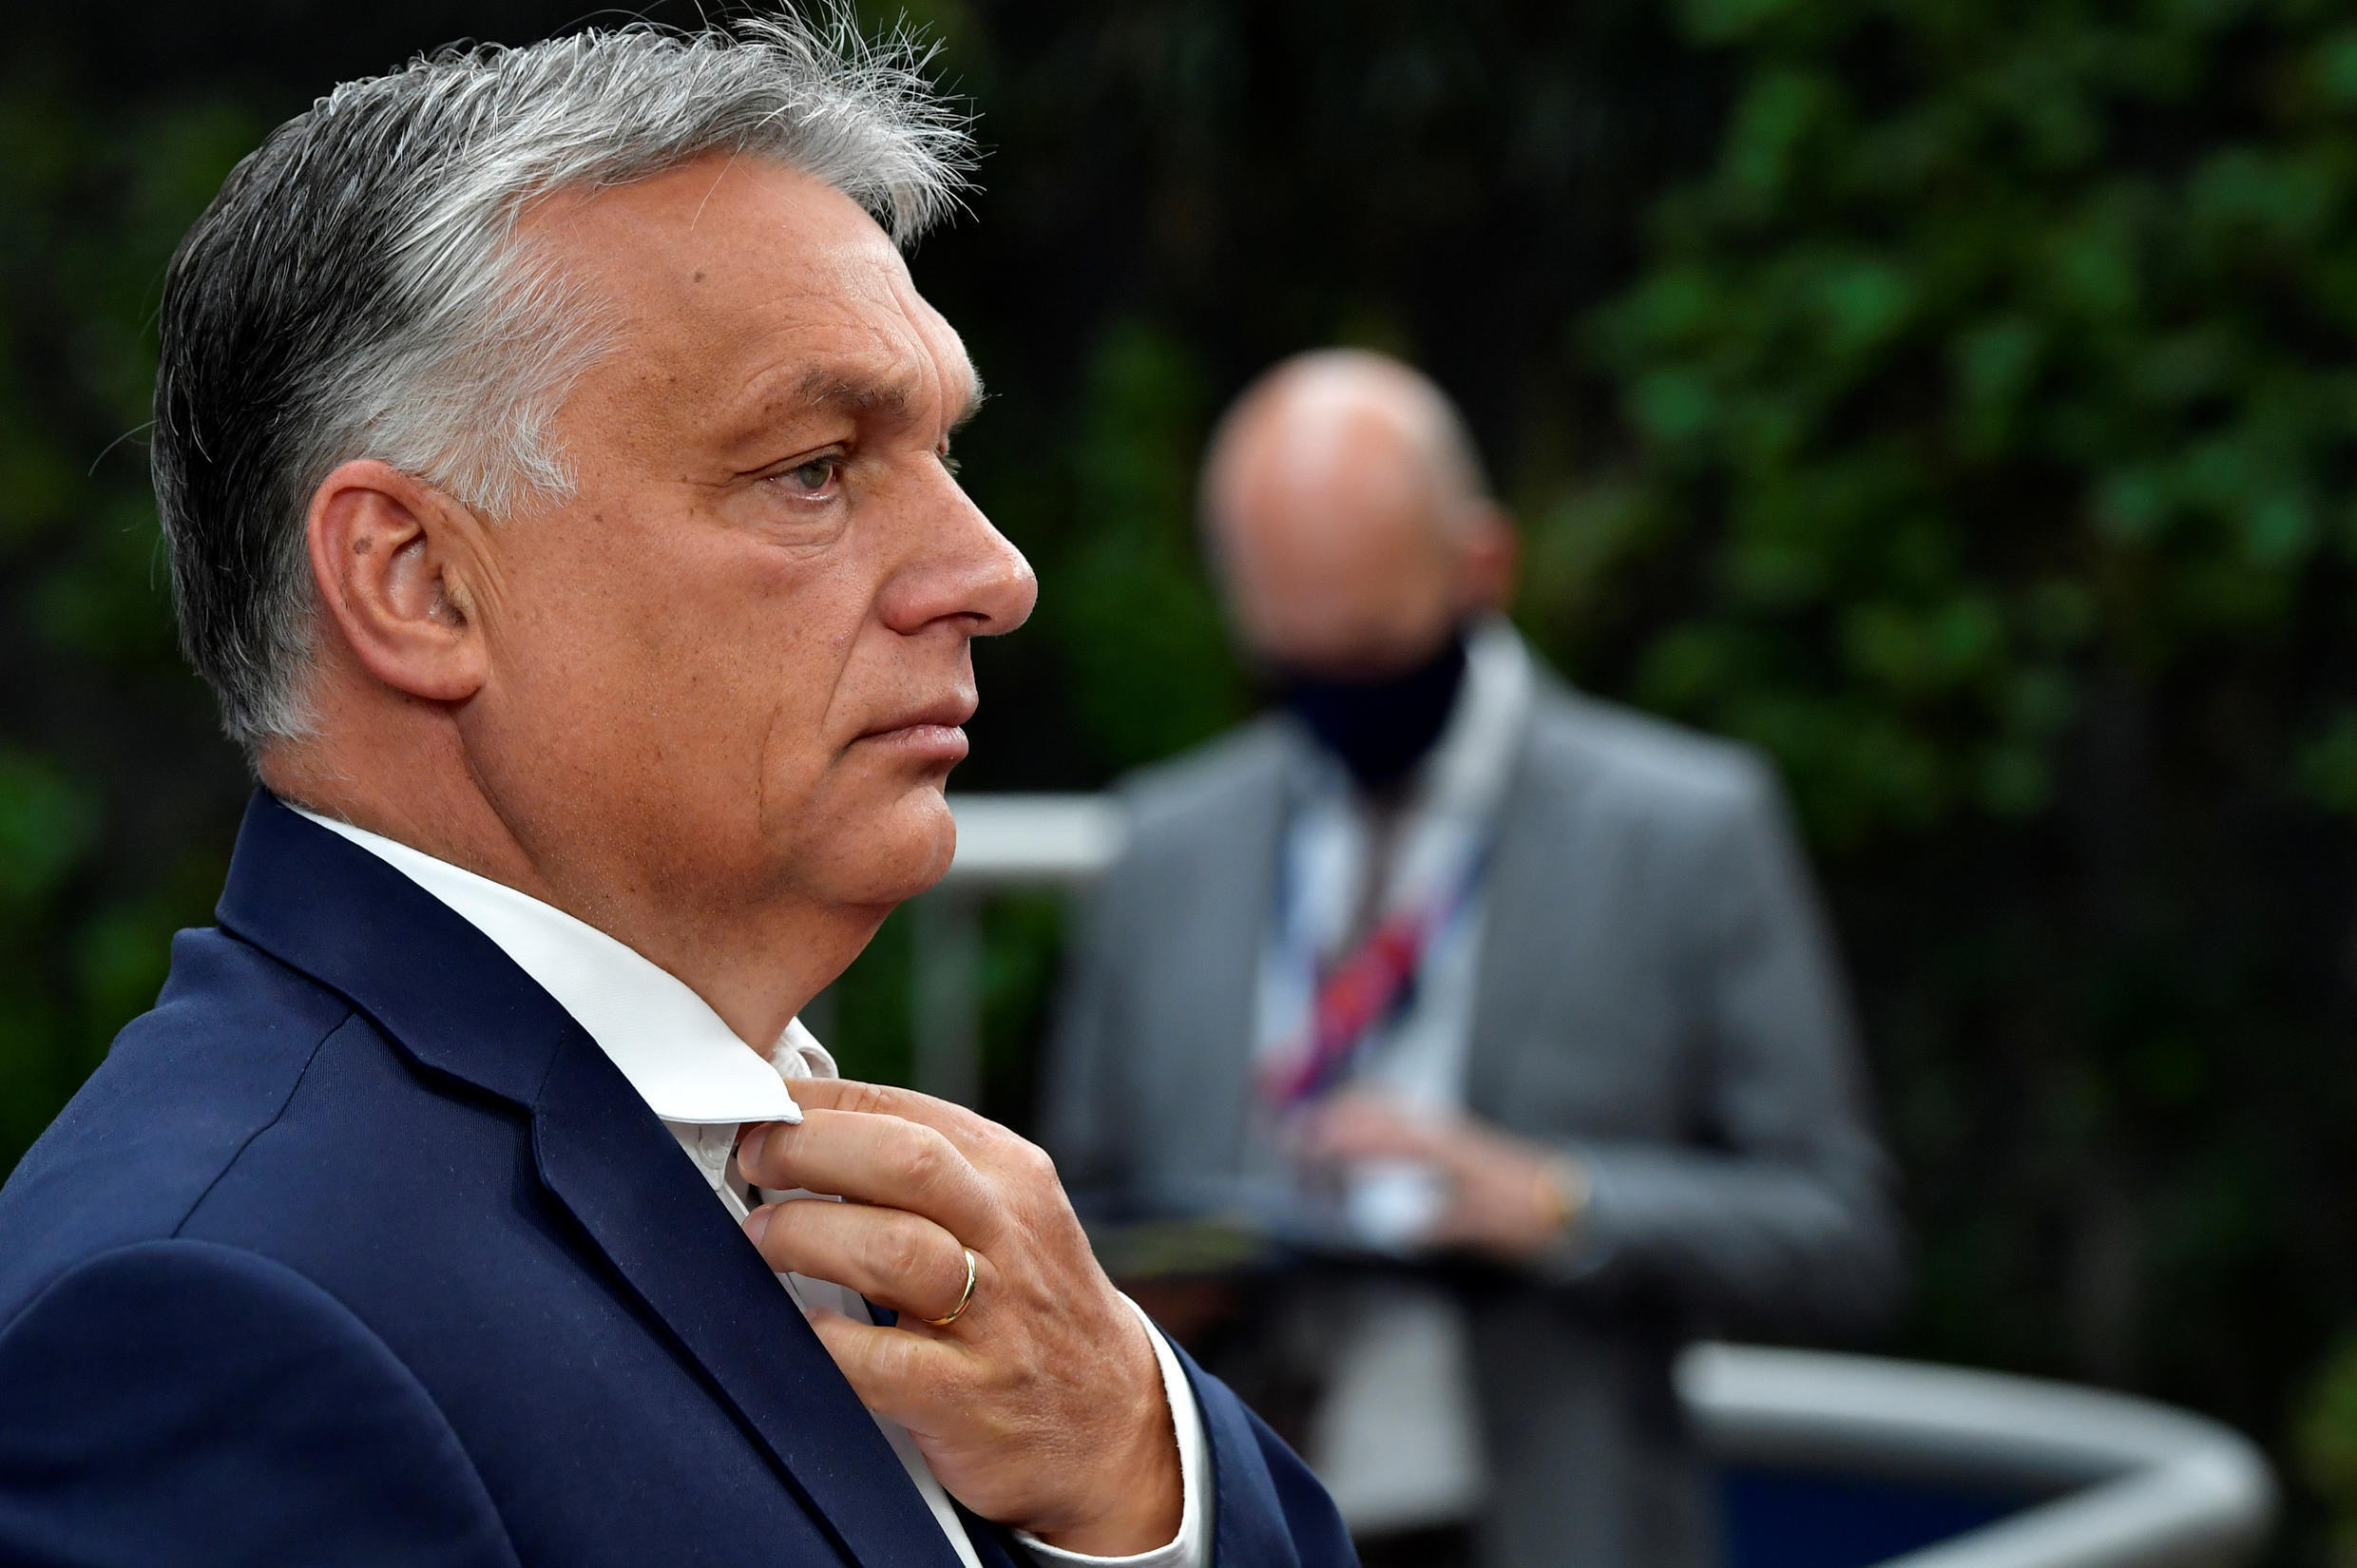 ILE PHOTO: Hungary's Prime Minister Viktor Orban arrives for the first face-to-face EU summit since the coronavirus disease (COVID-19) outbreak, in Brussels, Belgium July 19, 2020.